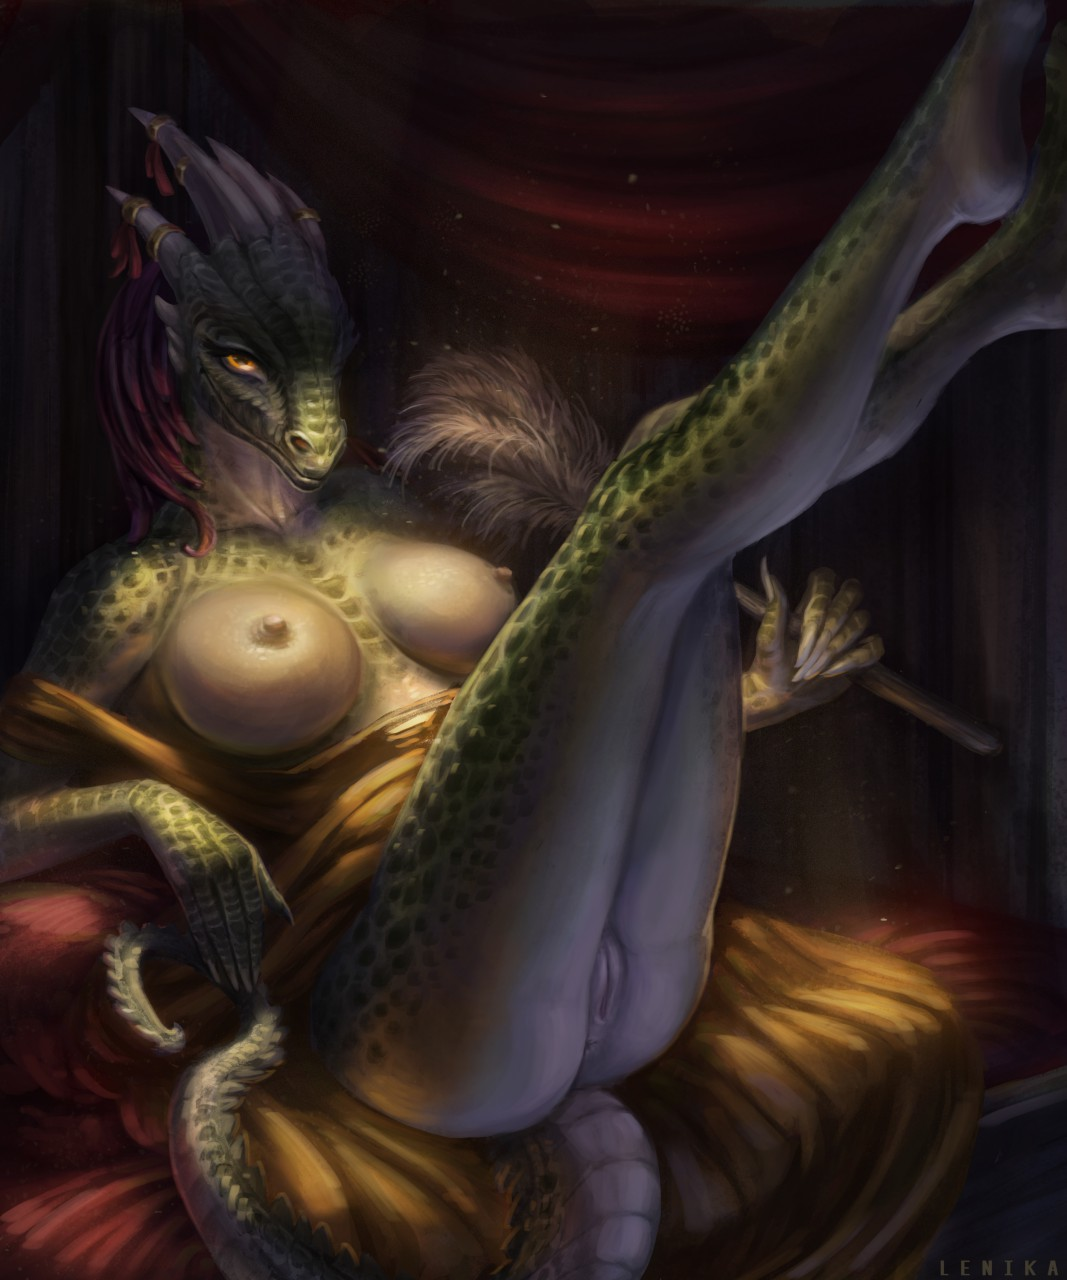 maid cosplay argonian the lusty Fairy tail fanfiction lucy pregnant